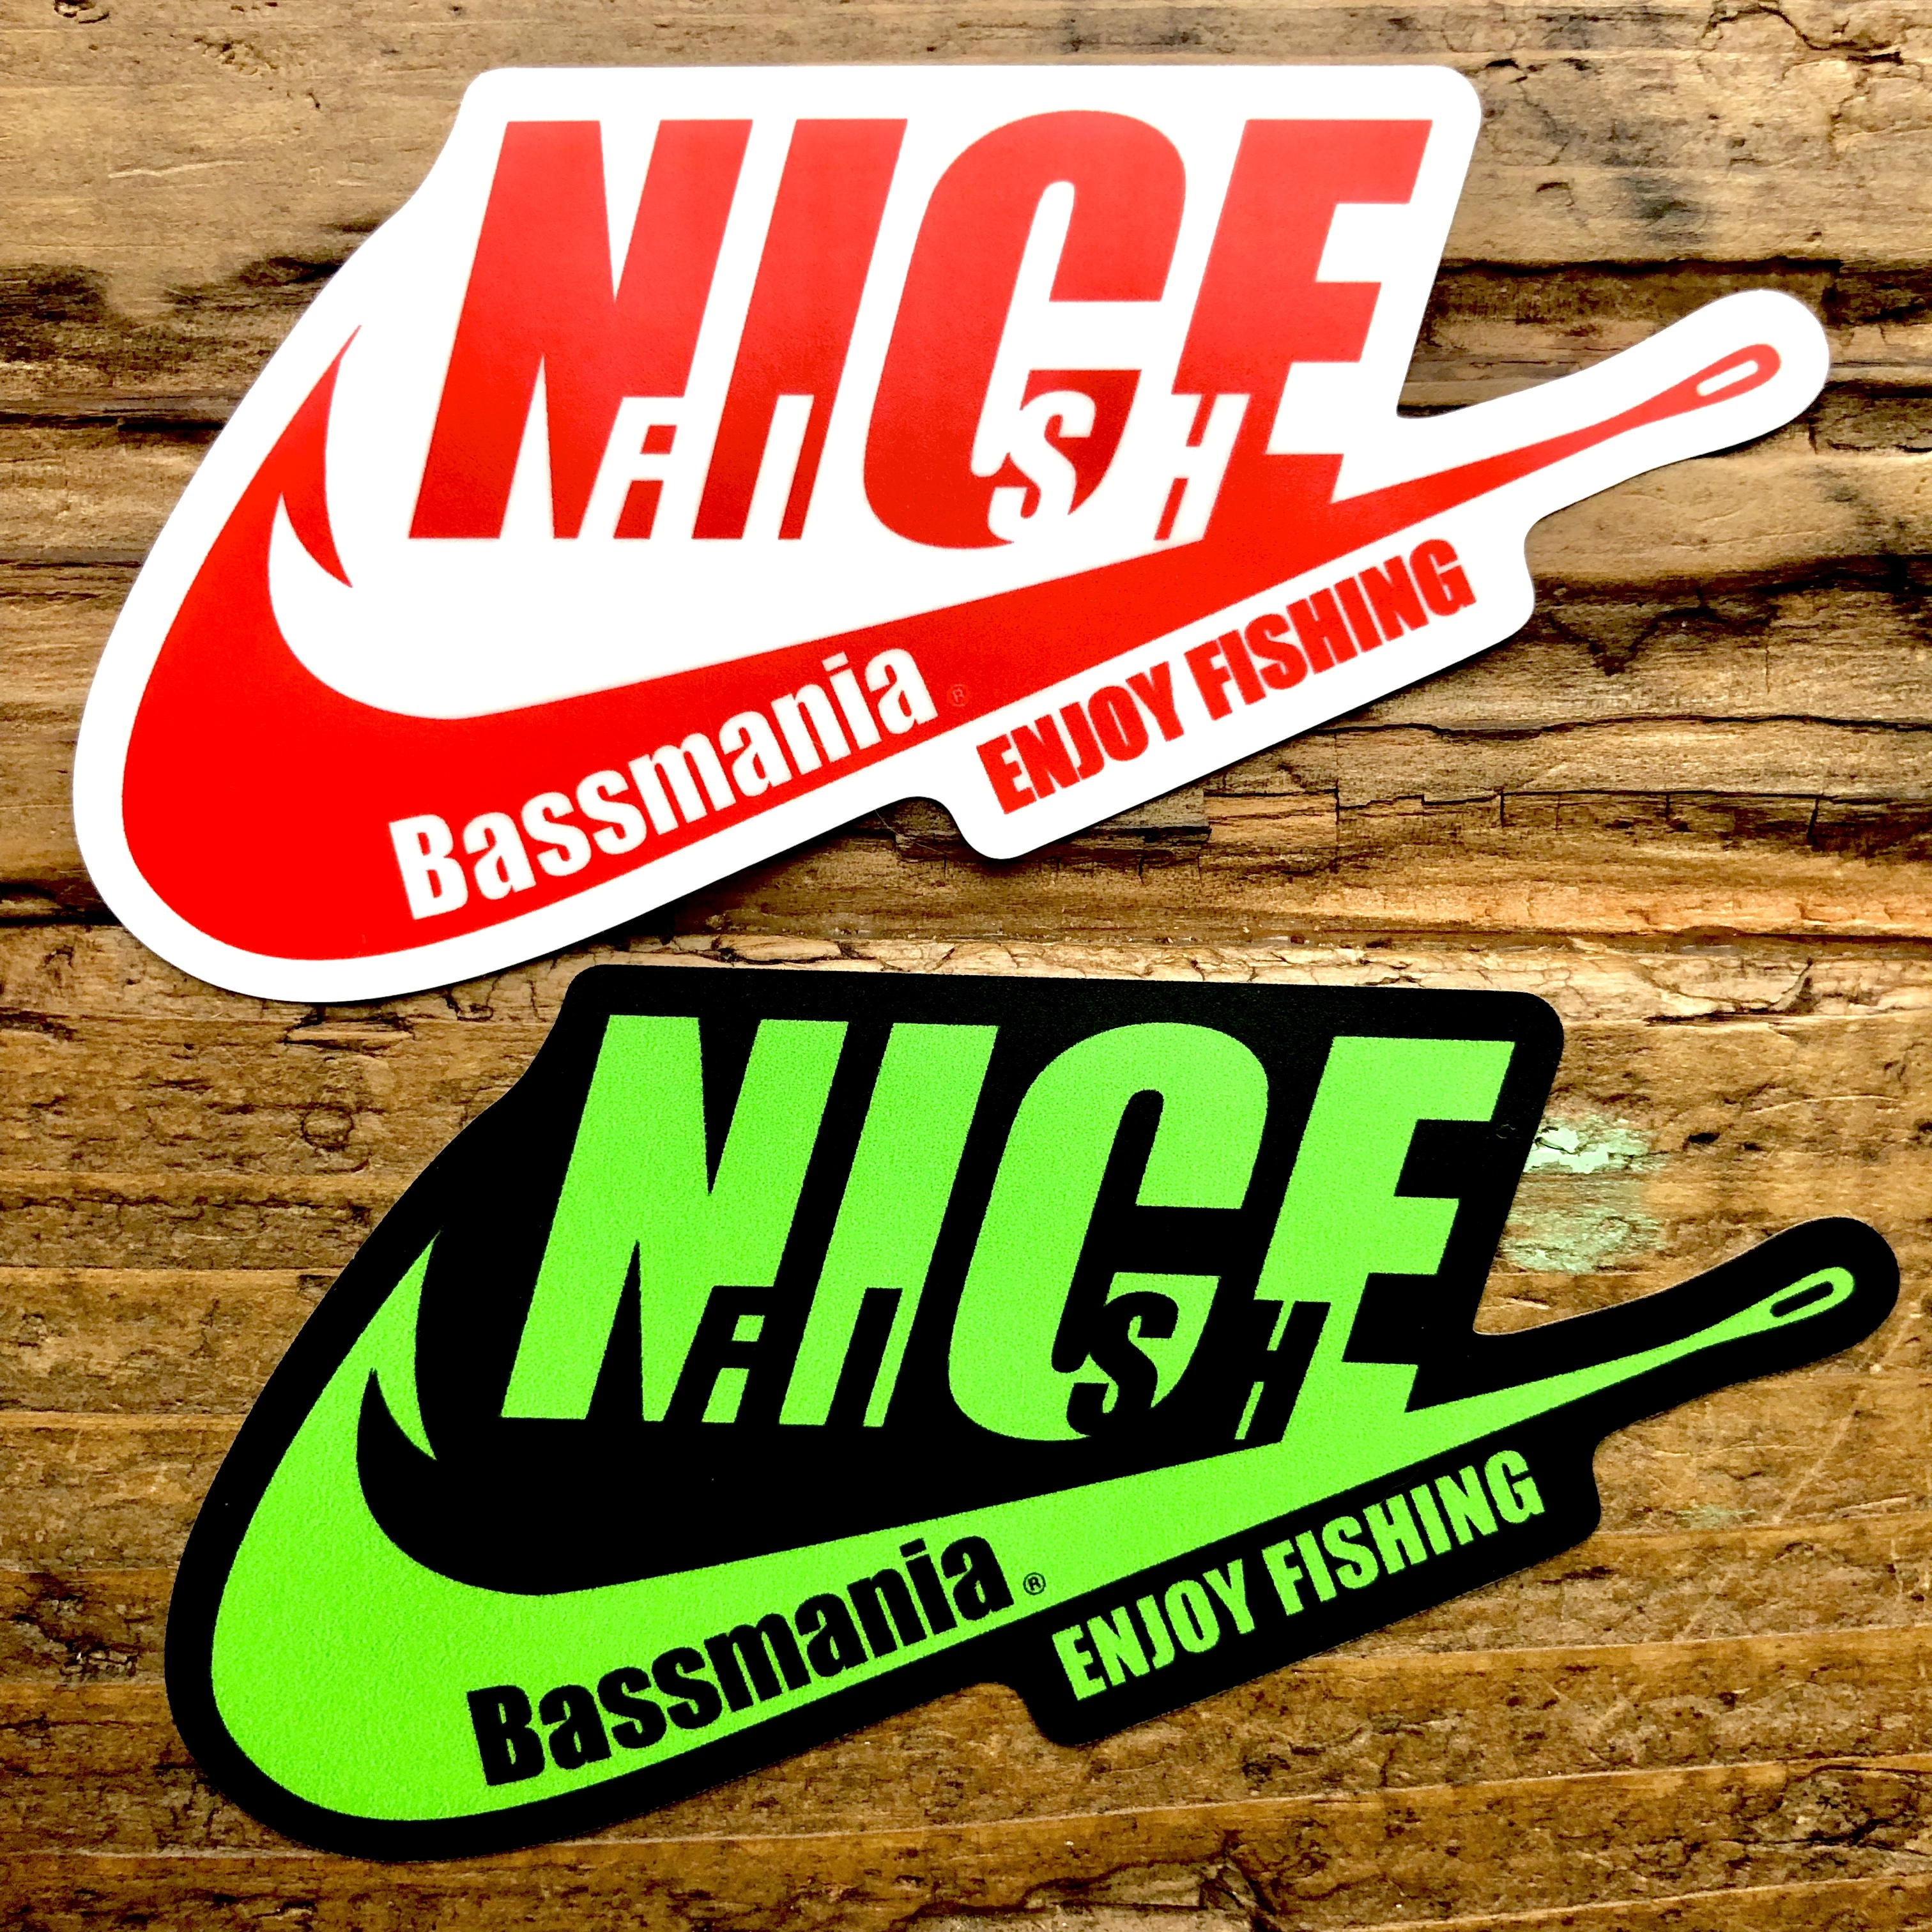 NICE FISH logo sticker